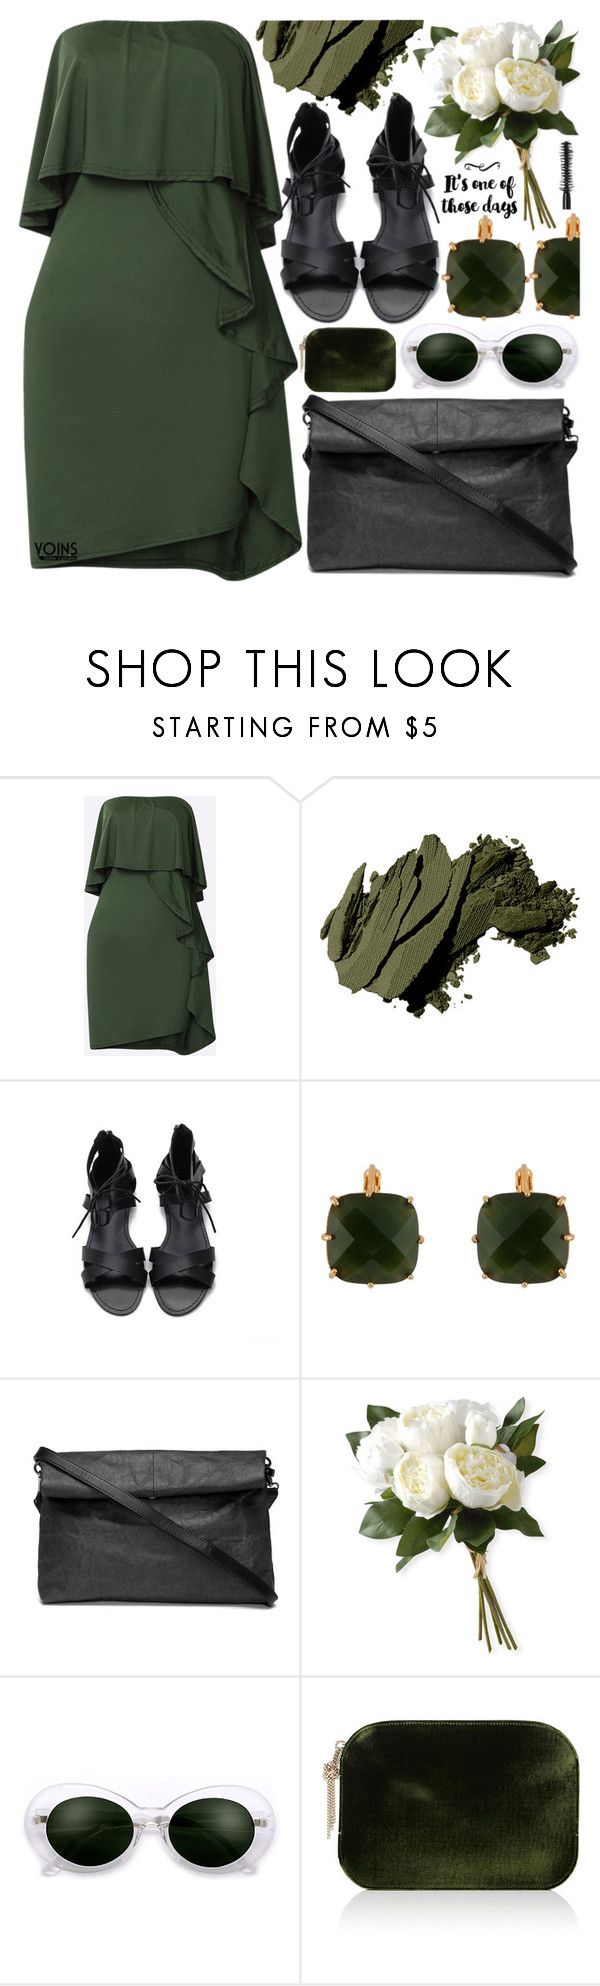 """""""Flowy Dress #Yoins"""" by pastelneon ❤ liked on Polyvore featuring Bobbi Brown Cosmetics, Les Néréides, National Tree Company, Nina Ricci and Marc Jacobs"""